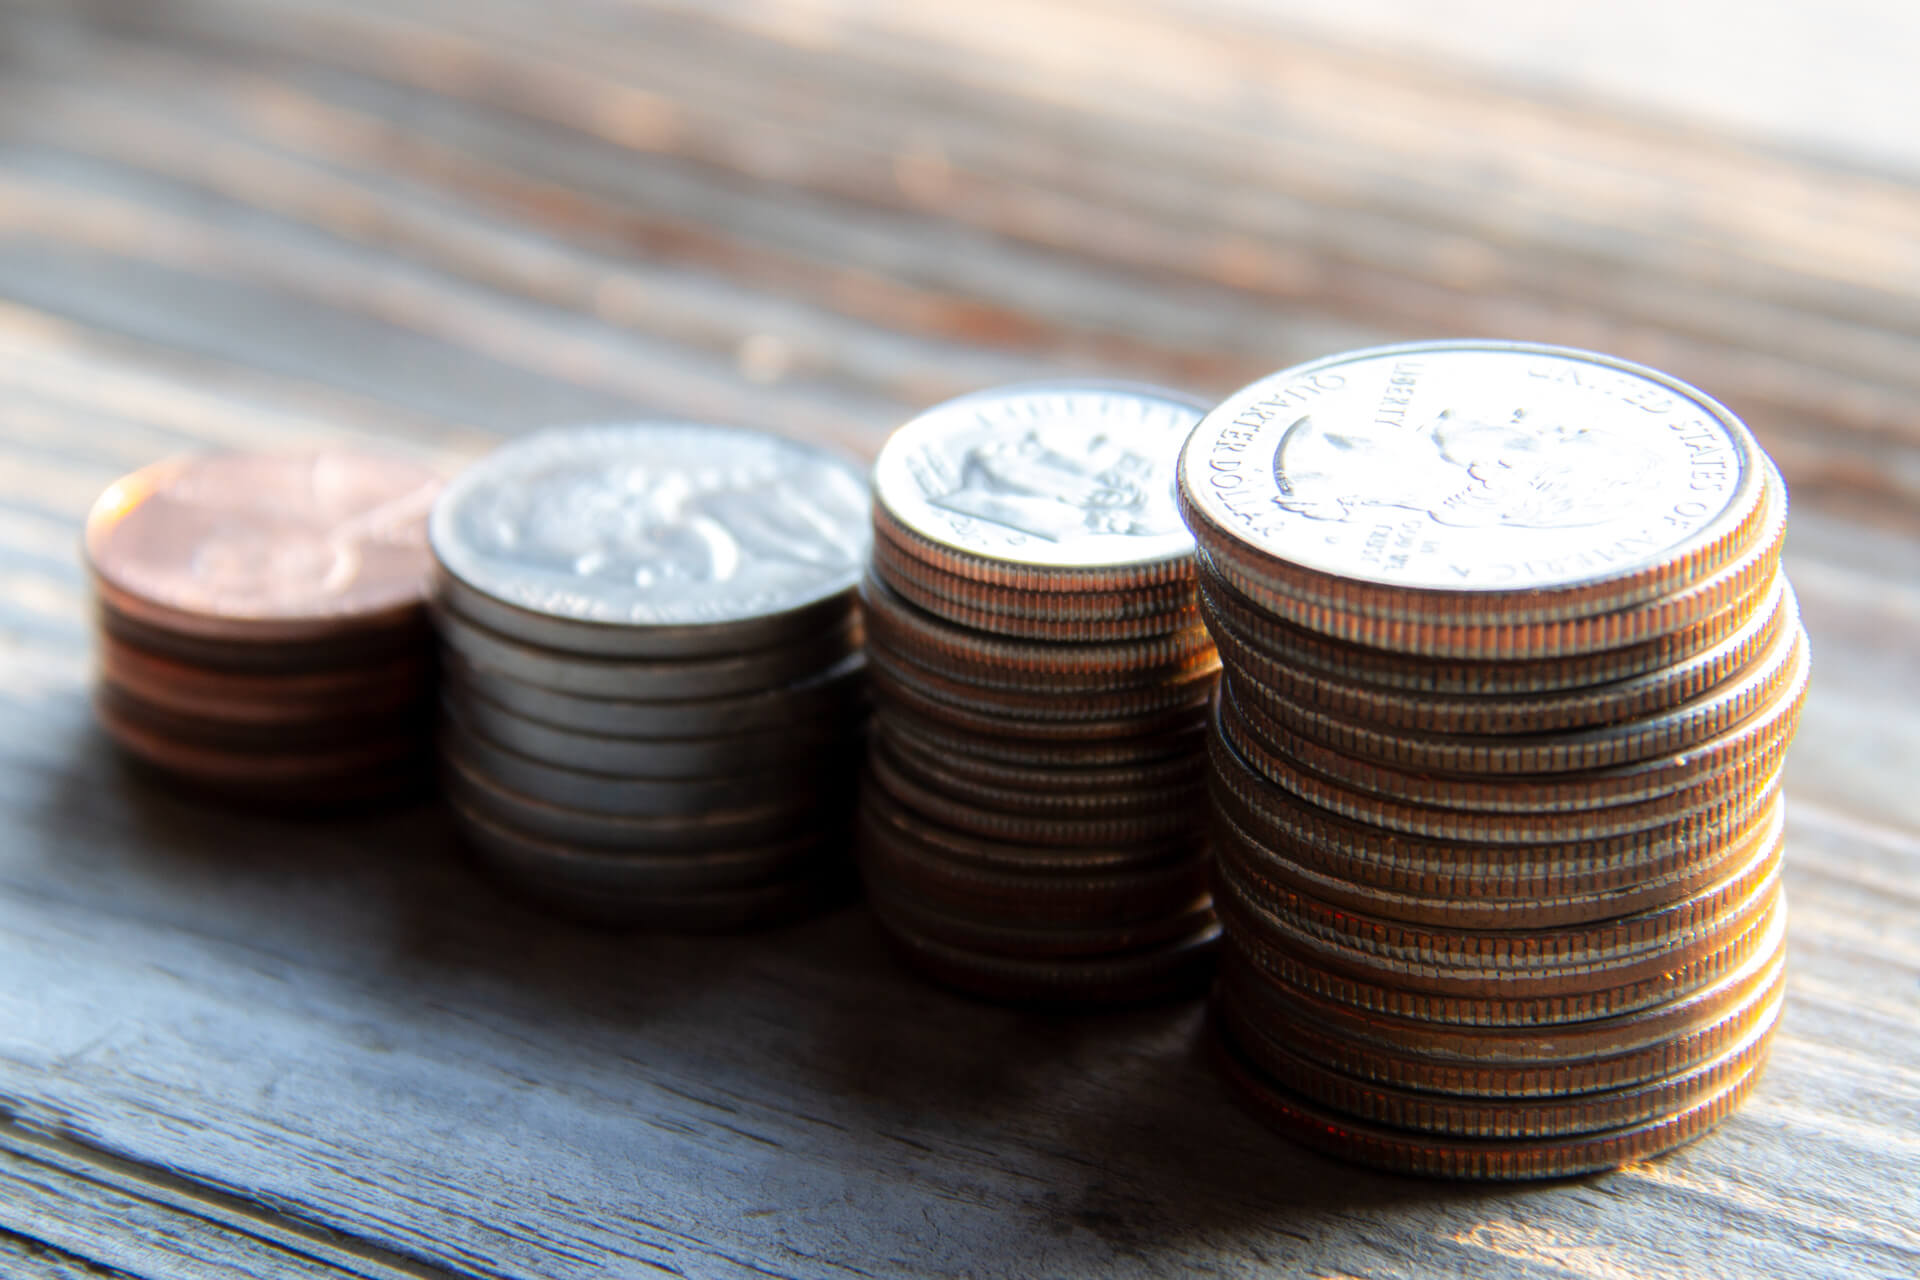 U S Coins Stacked Free Image Download